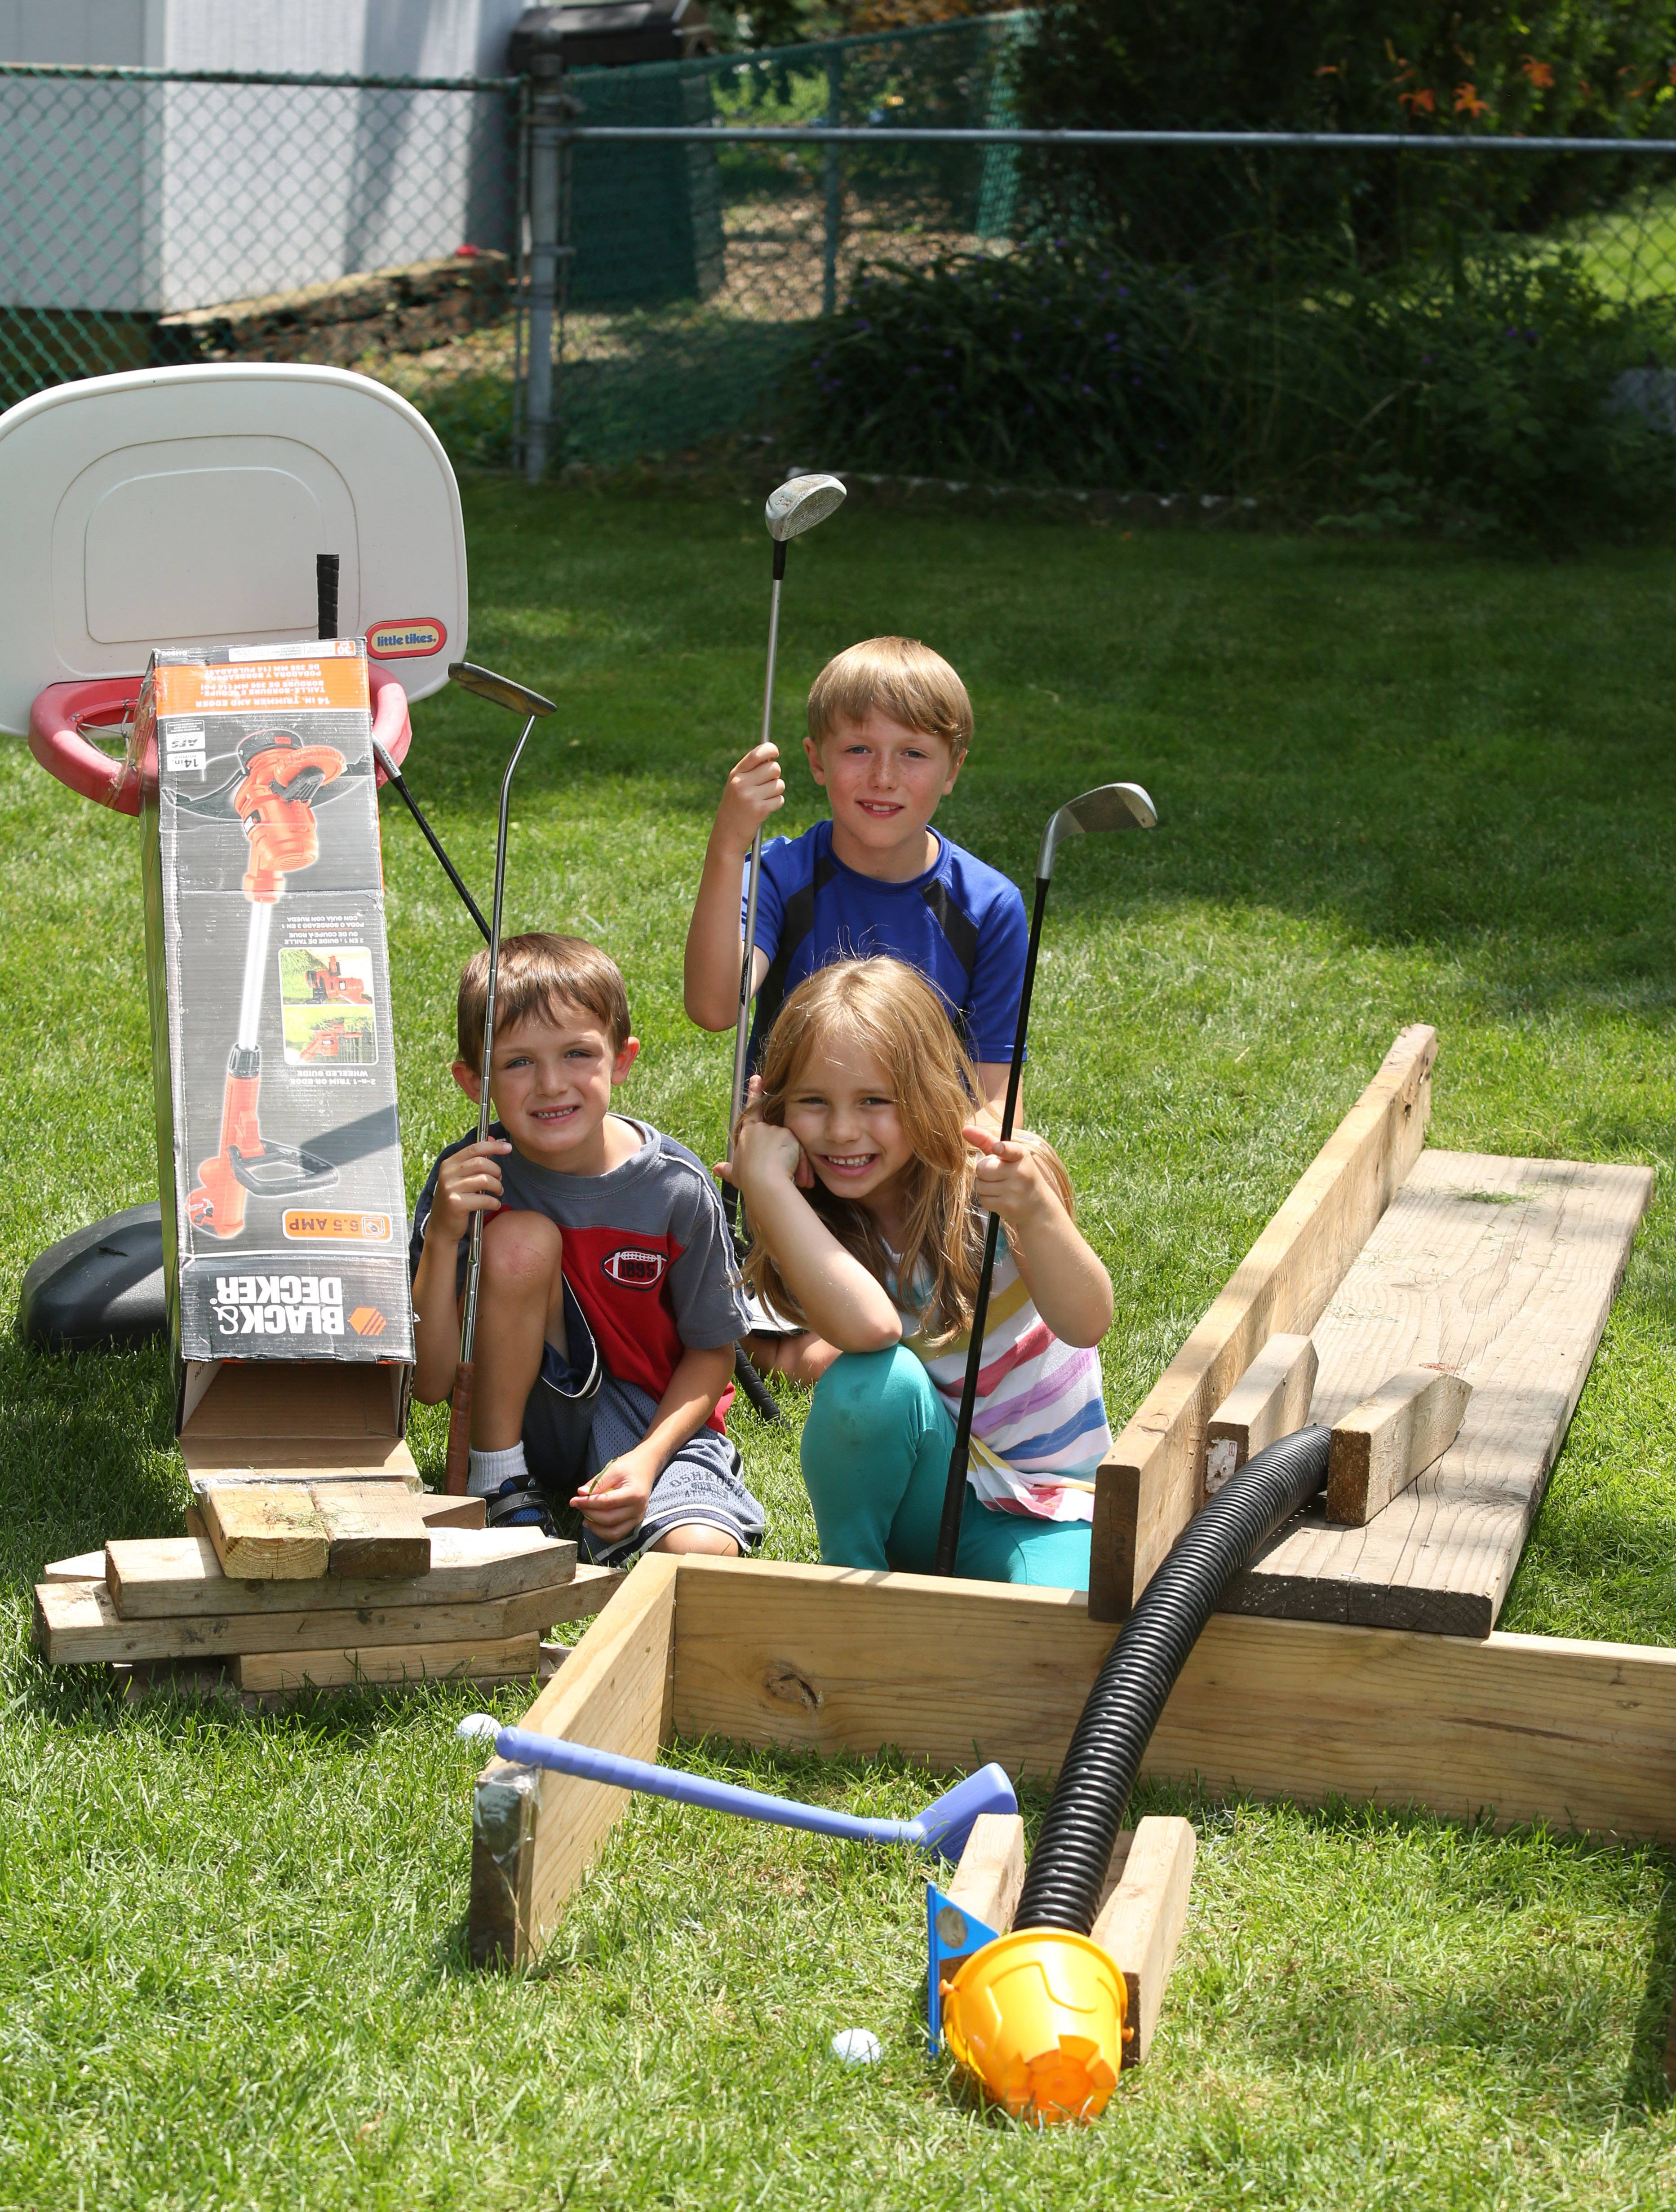 Rylan Williams, 9, background, his brother Caden, 5, left, and friend Lily Anderson, 6, created a homemade mini-golf course made out of boards, a basketball hoop, tubes, buckets, and other items in the Williamses backyard in Schaumburg.